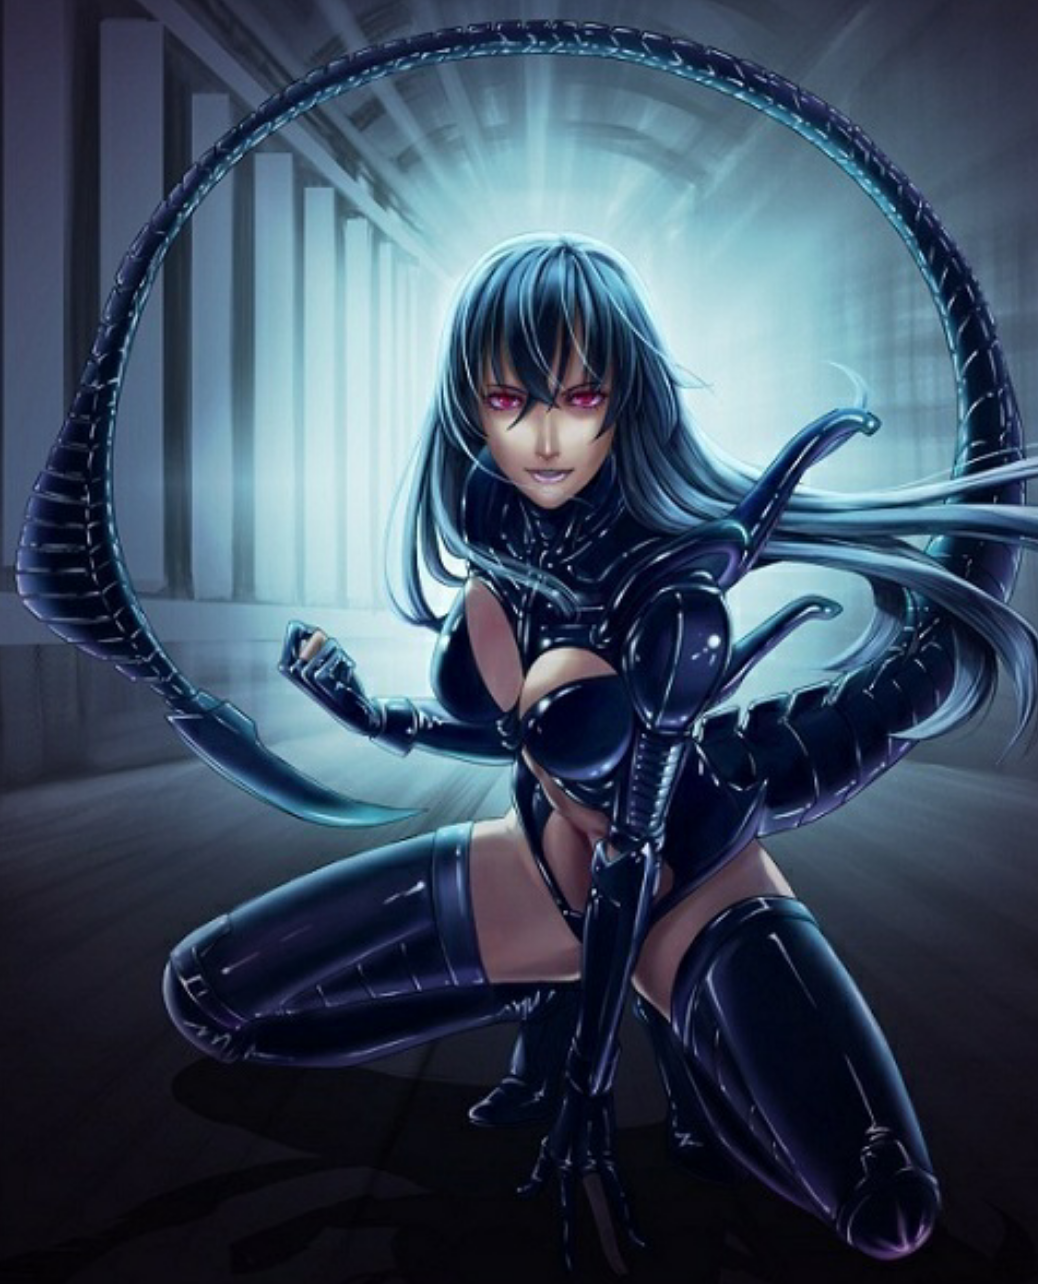 Anime Alien Girl alien xenomorph | alien girl, xenomorph, anime alien